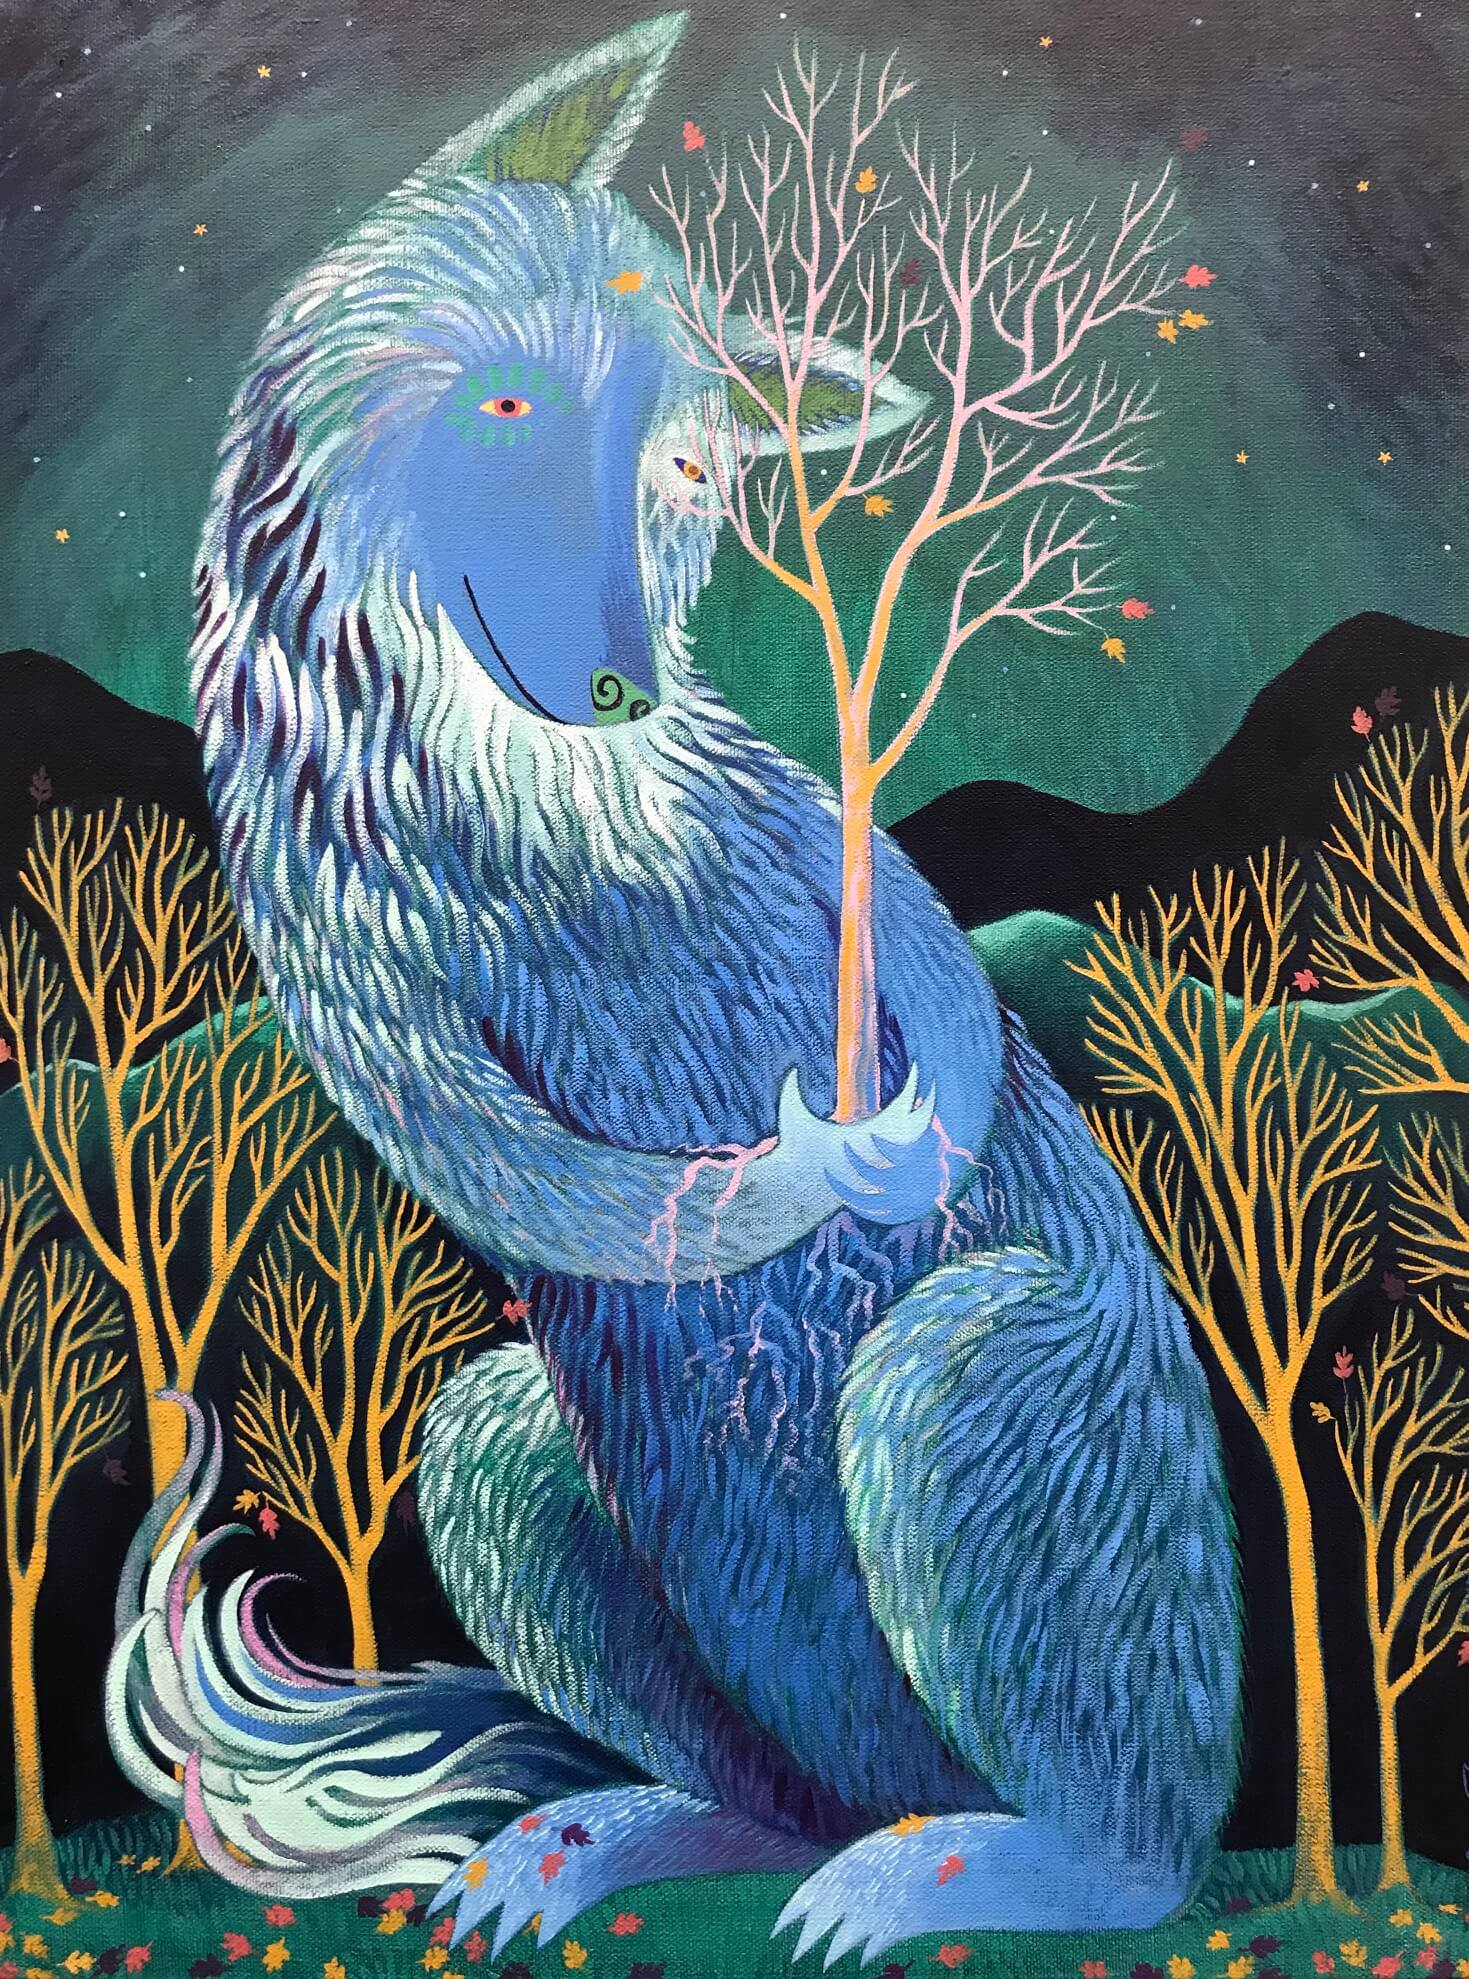 Elaine Thompson, Lunar Love, Painting, Fine Art at the Woodstock-New Paltz Art & Crafts Fair